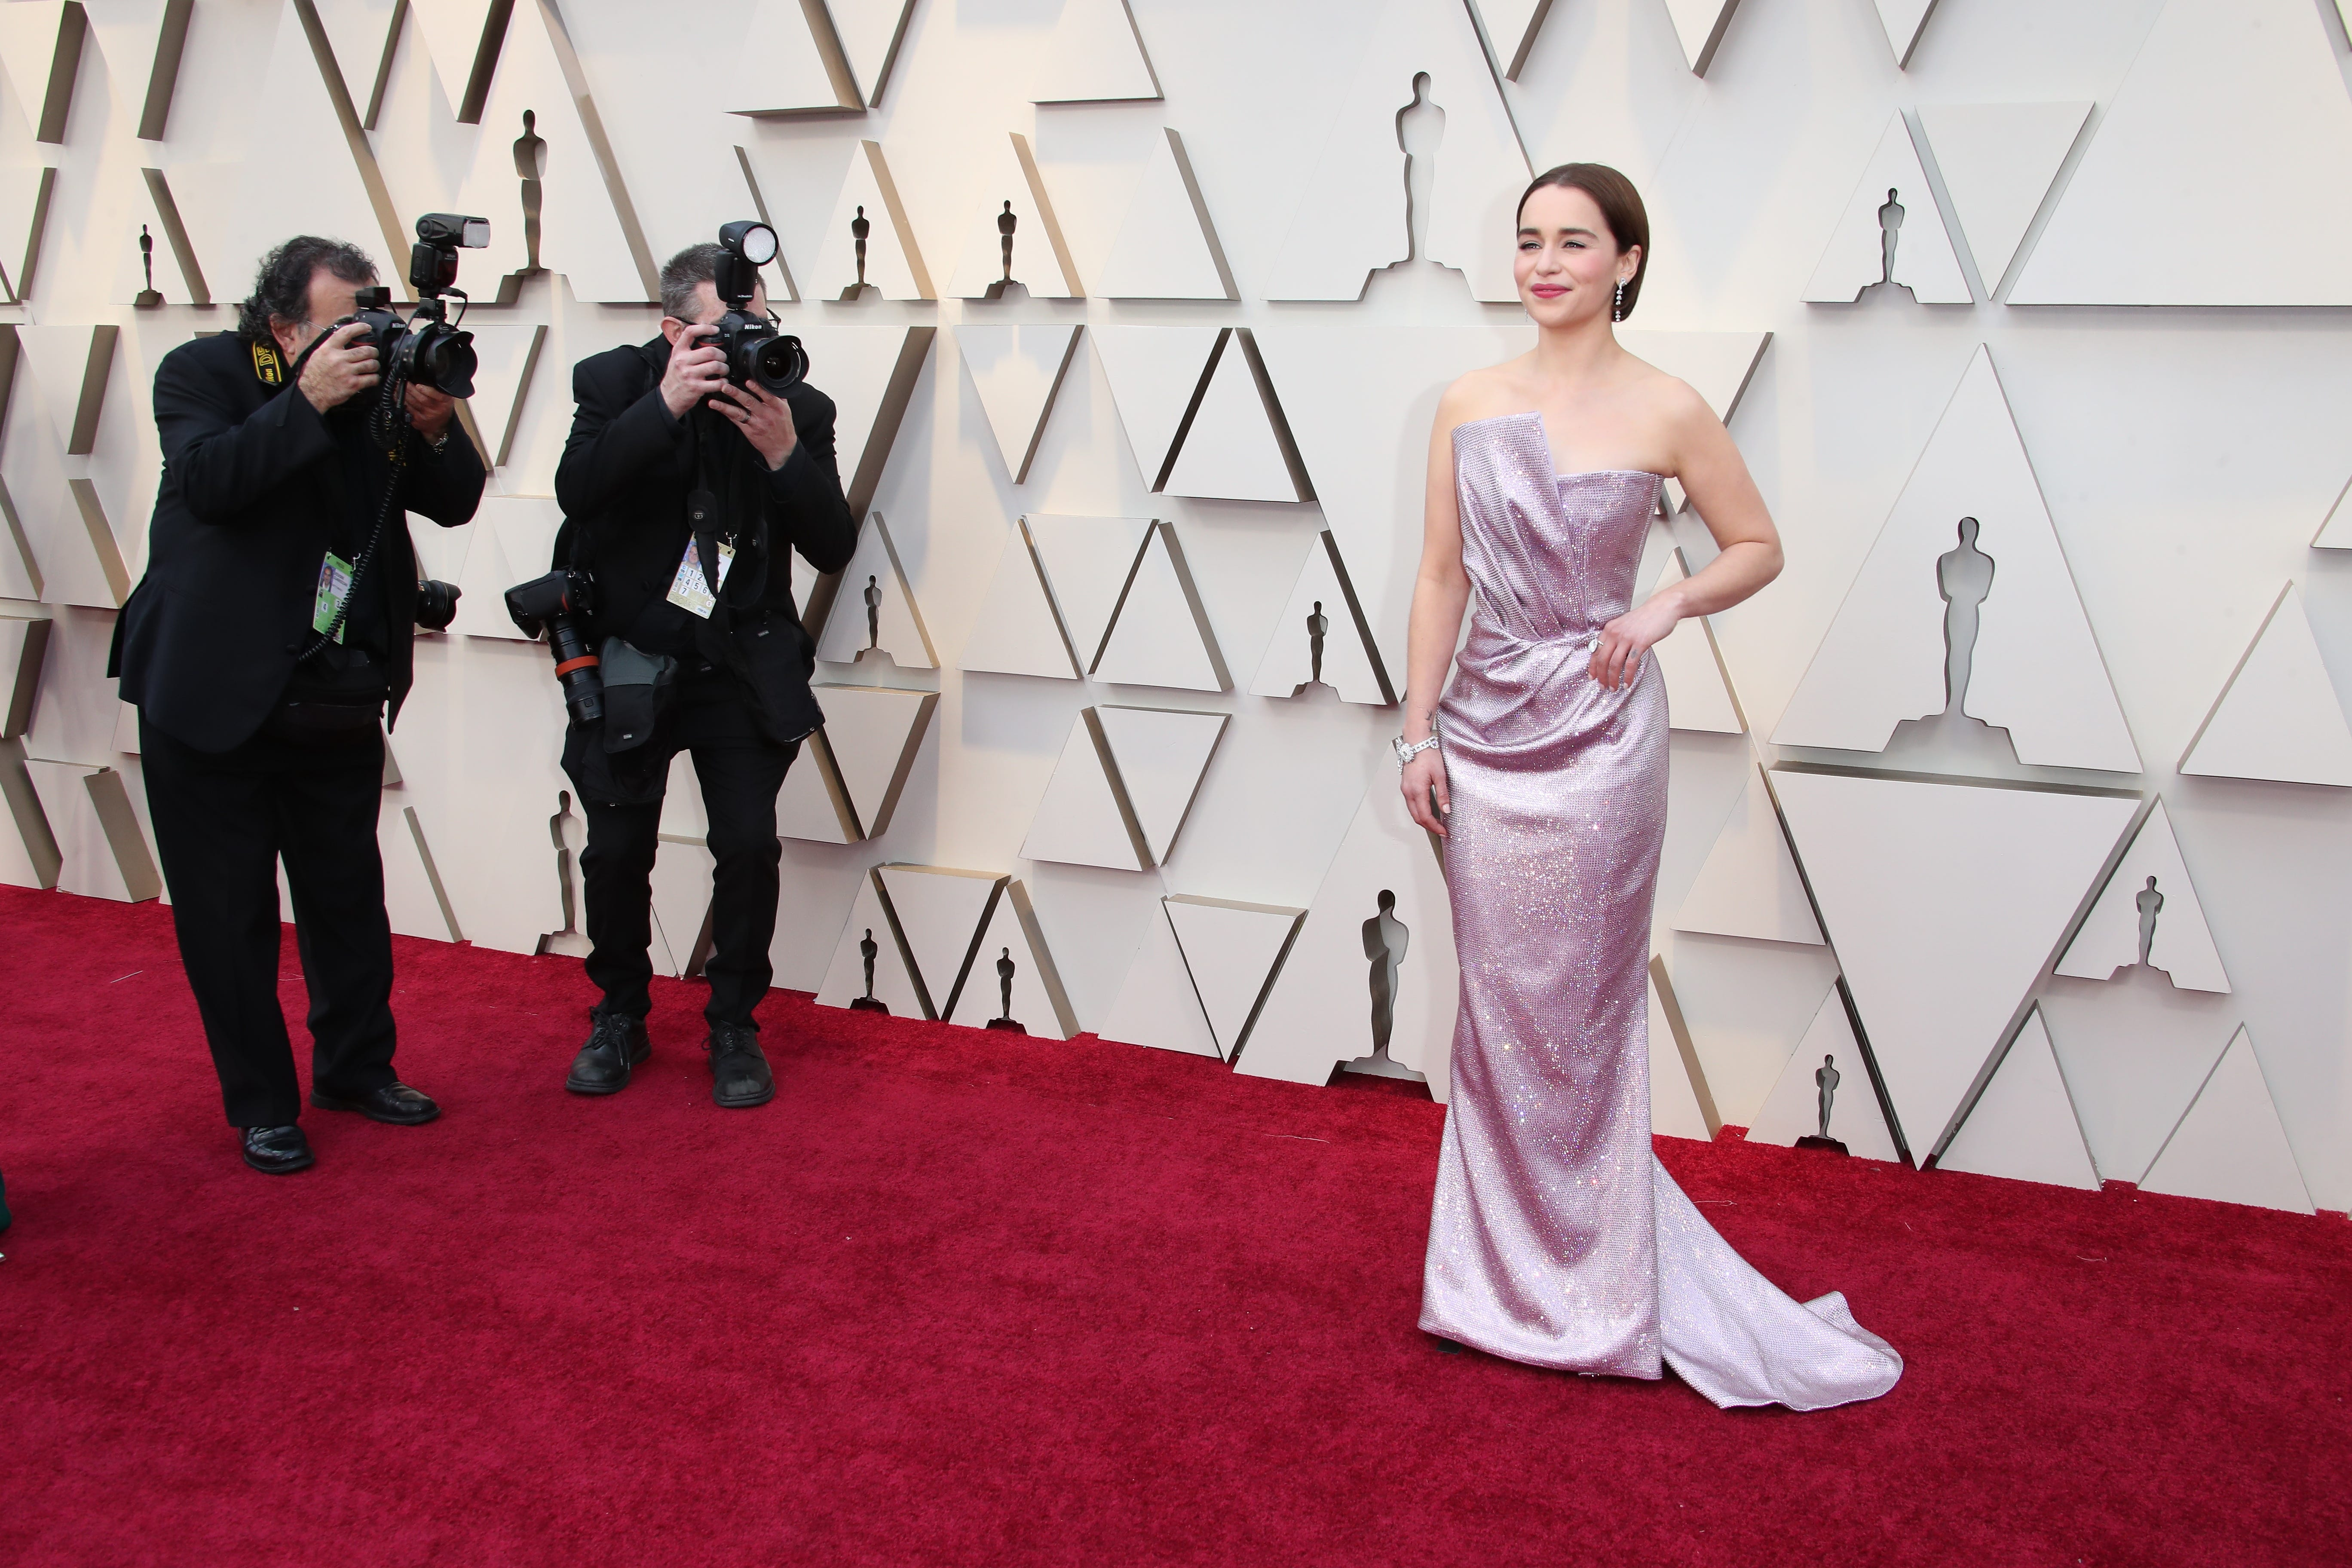 February 24, 2019; Los Angeles, CA, USA; Emilia Clarke arrives at the 91st Academy Awards at the Dolby Theatre. Mandatory Credit: Dan MacMedan-USA TODAY NETWORK (Via OlyDrop)